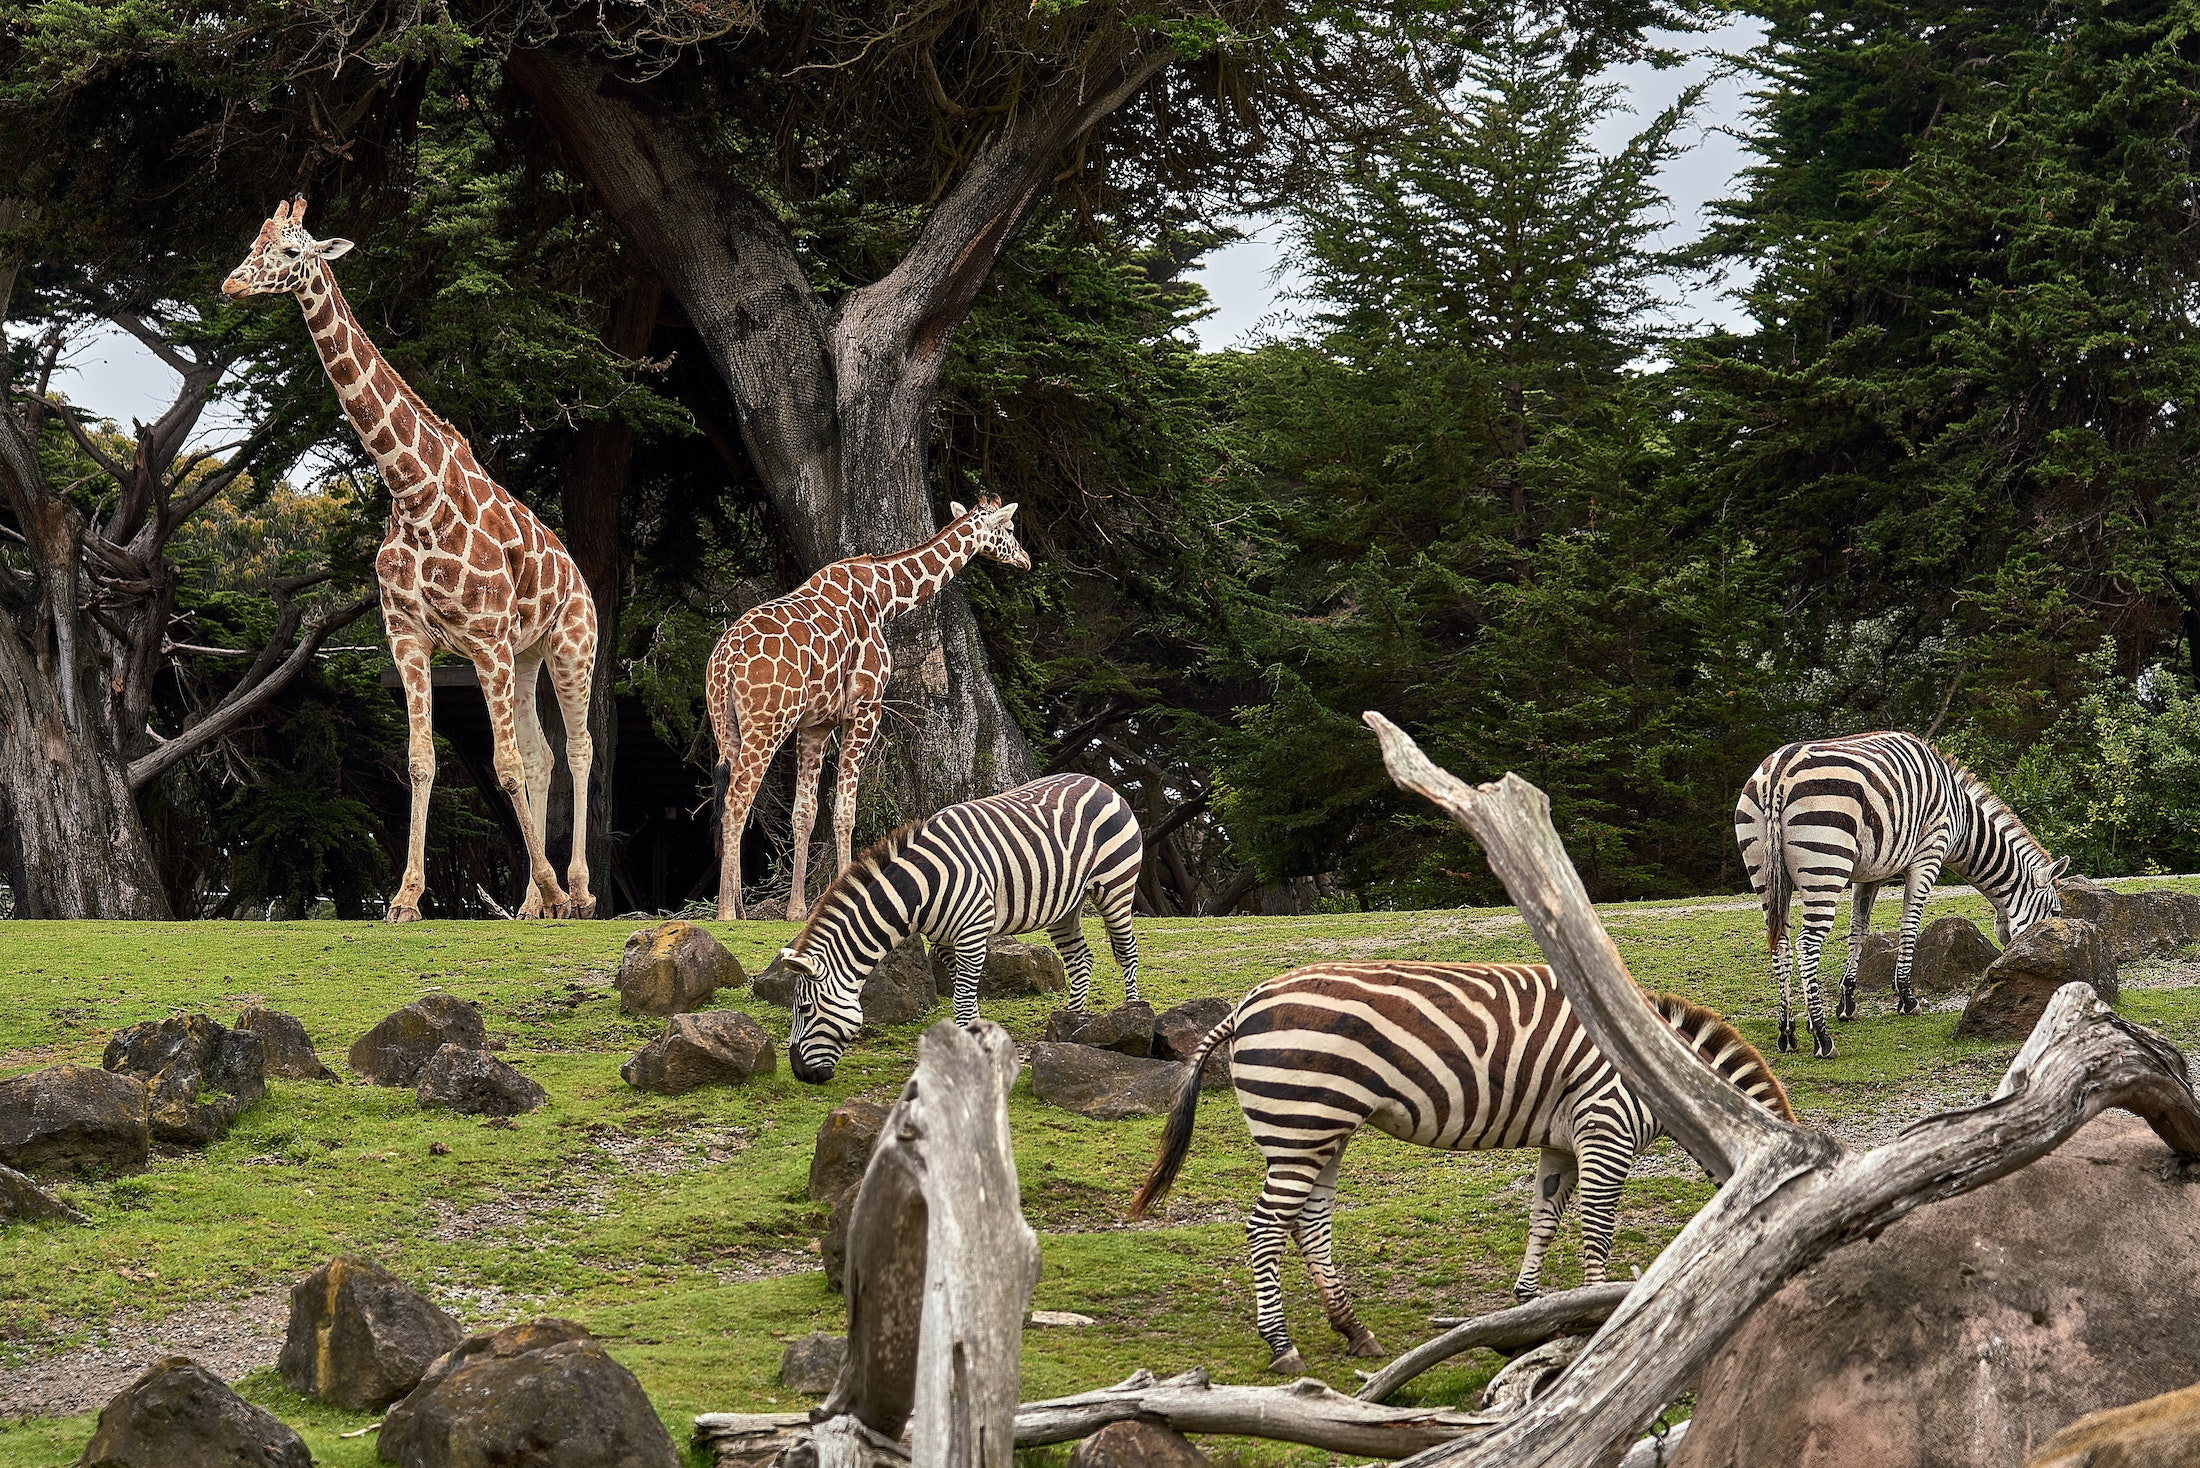 membership marketing image of zebras and giraffes grazing at the zoo